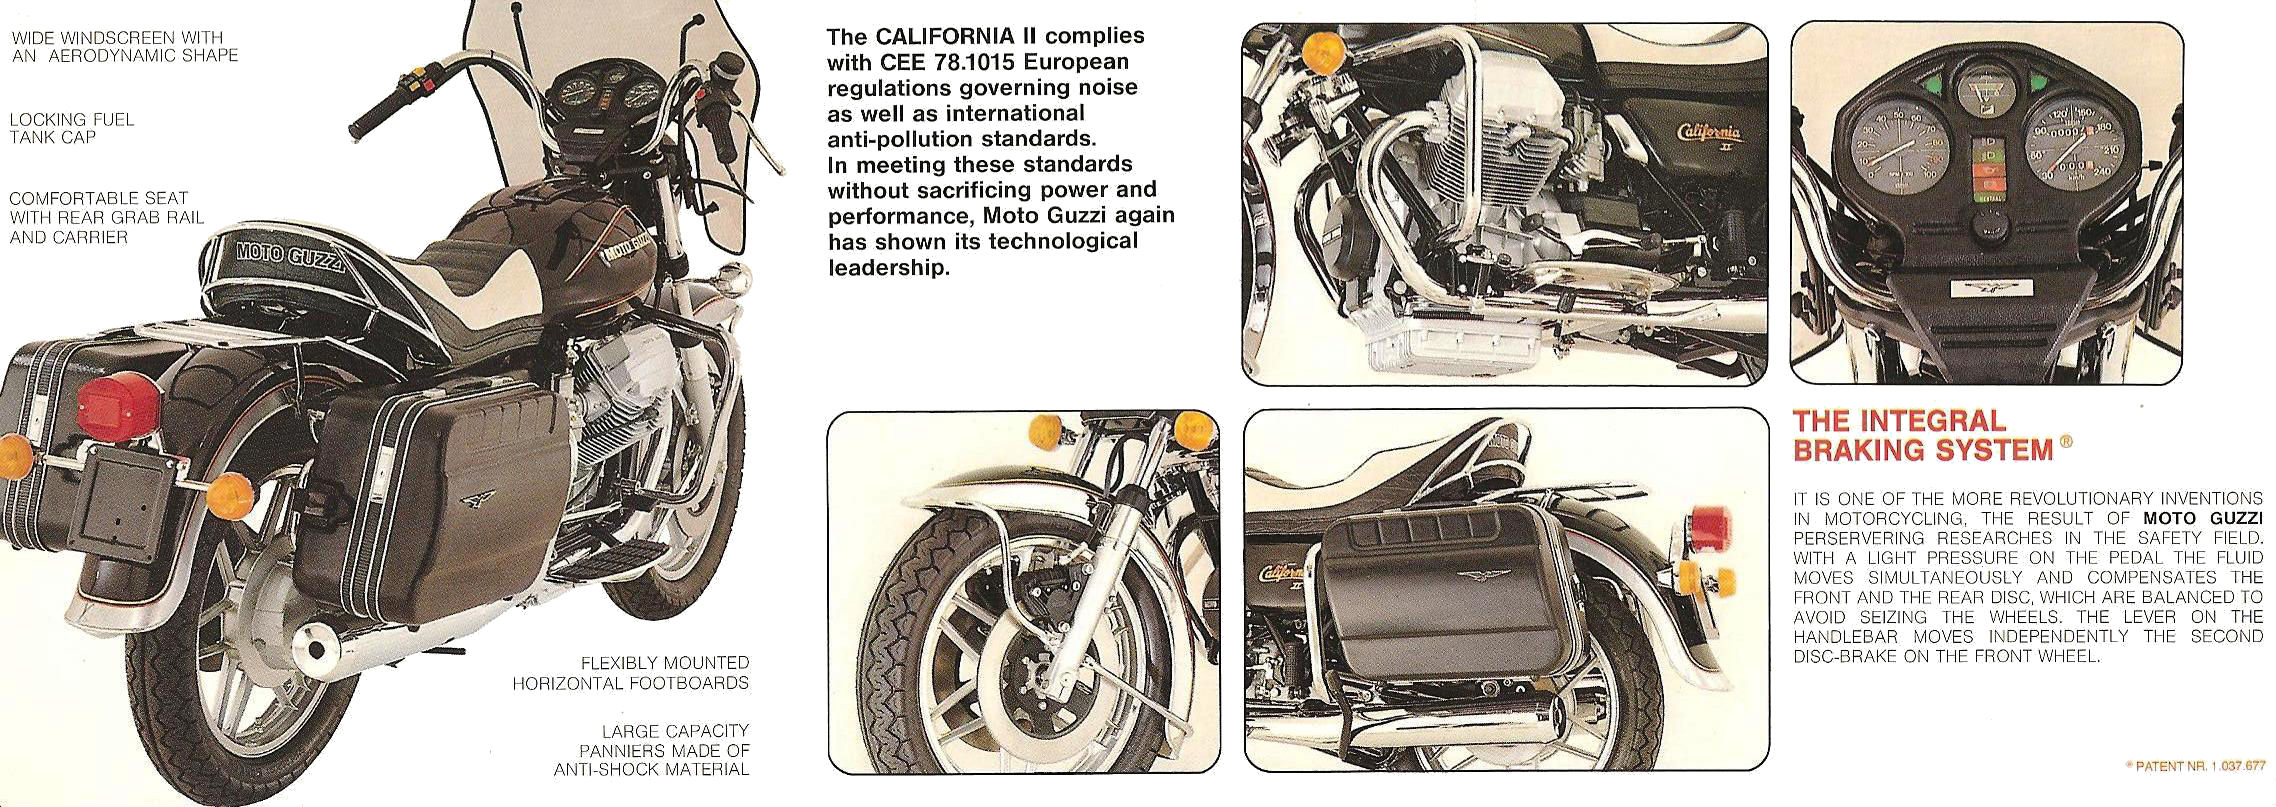 Moto Guzzi California II 1983 images #107471